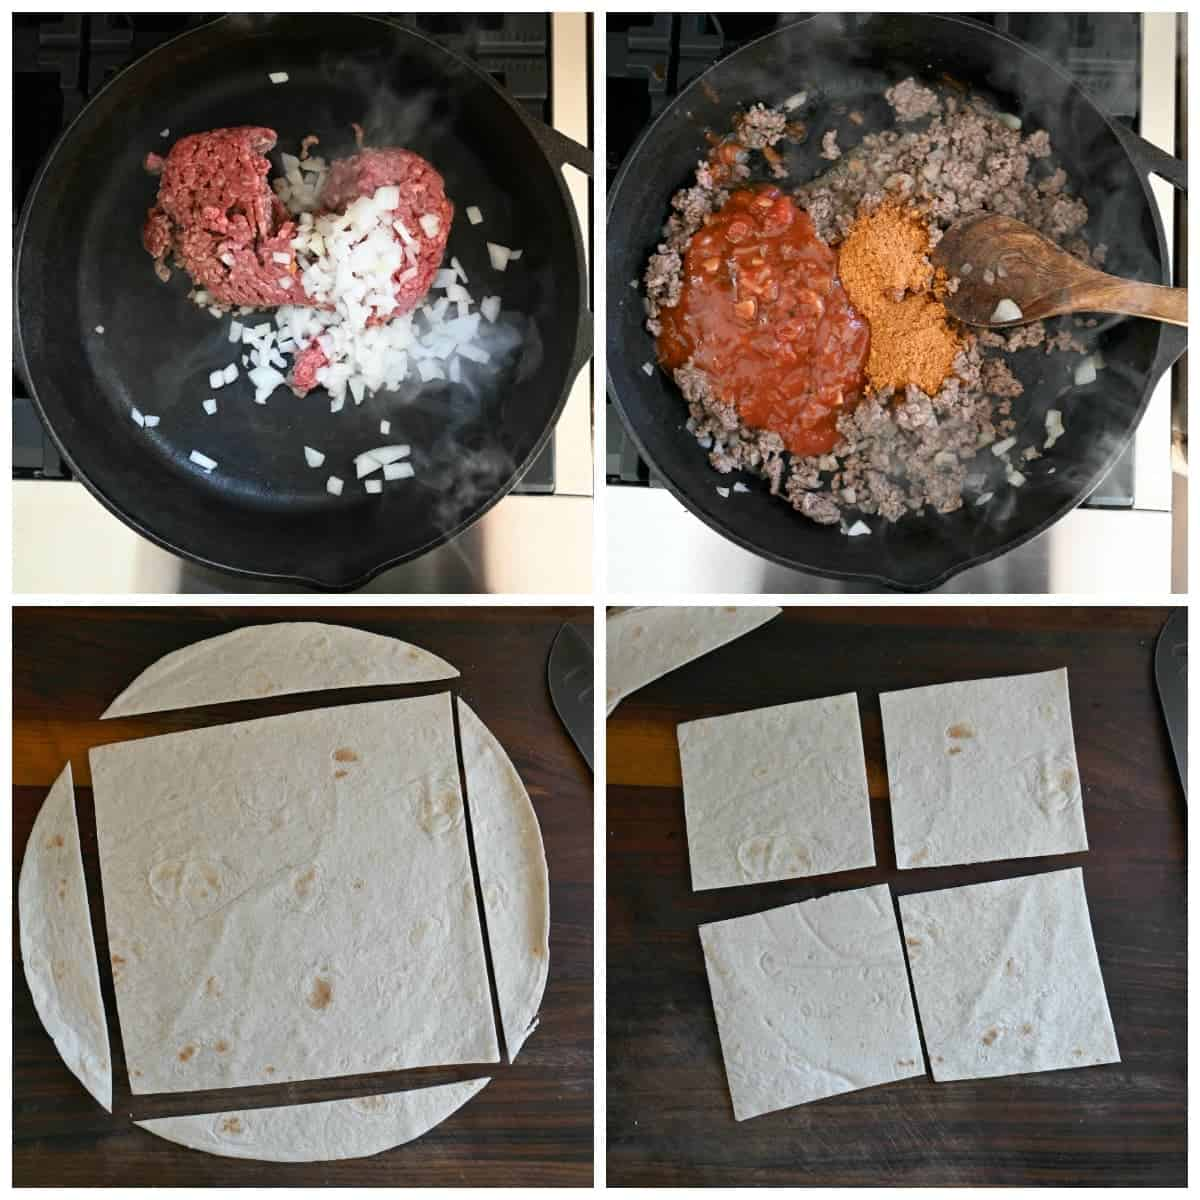 Four process photos. First one, ground beef and diced onions in a cast iron skillet. Second one, salsa and taco seasoning added in. Flour tortilla with the edges cut off to form a square. Fourth one, square tortilla cut into four small squares.